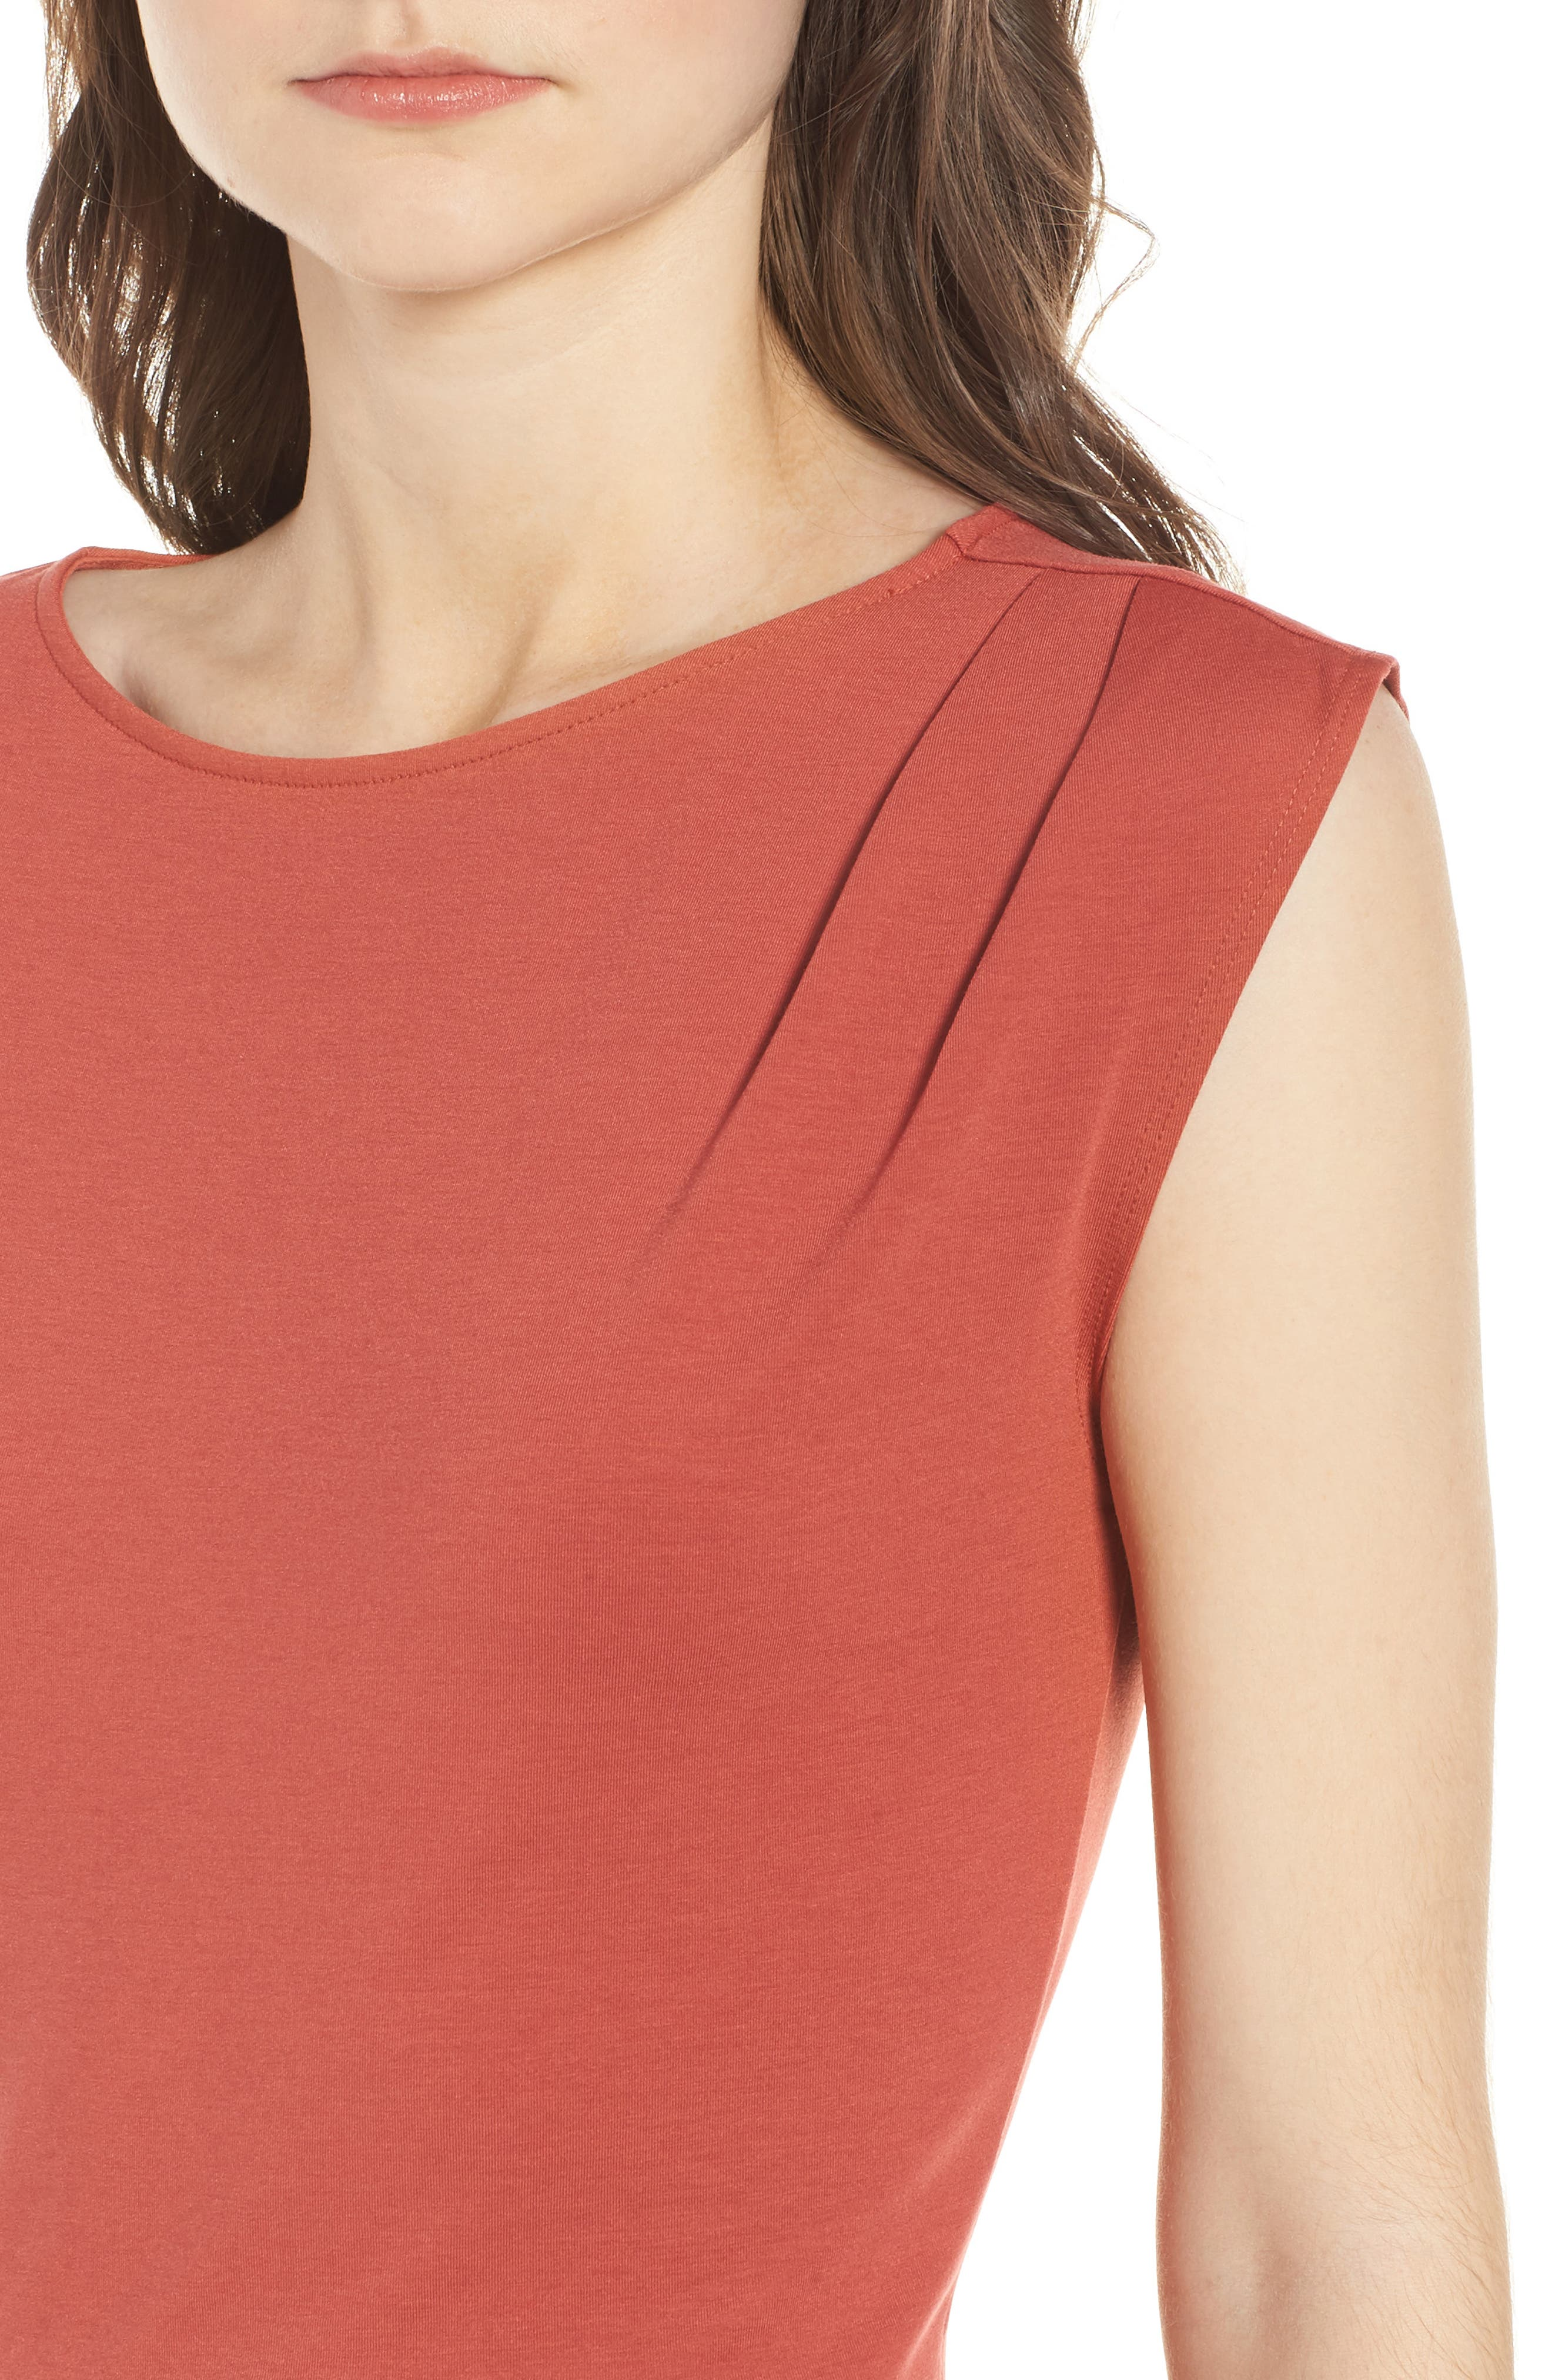 Ruched Knit Dress,                             Alternate thumbnail 4, color,                             Red Sauce